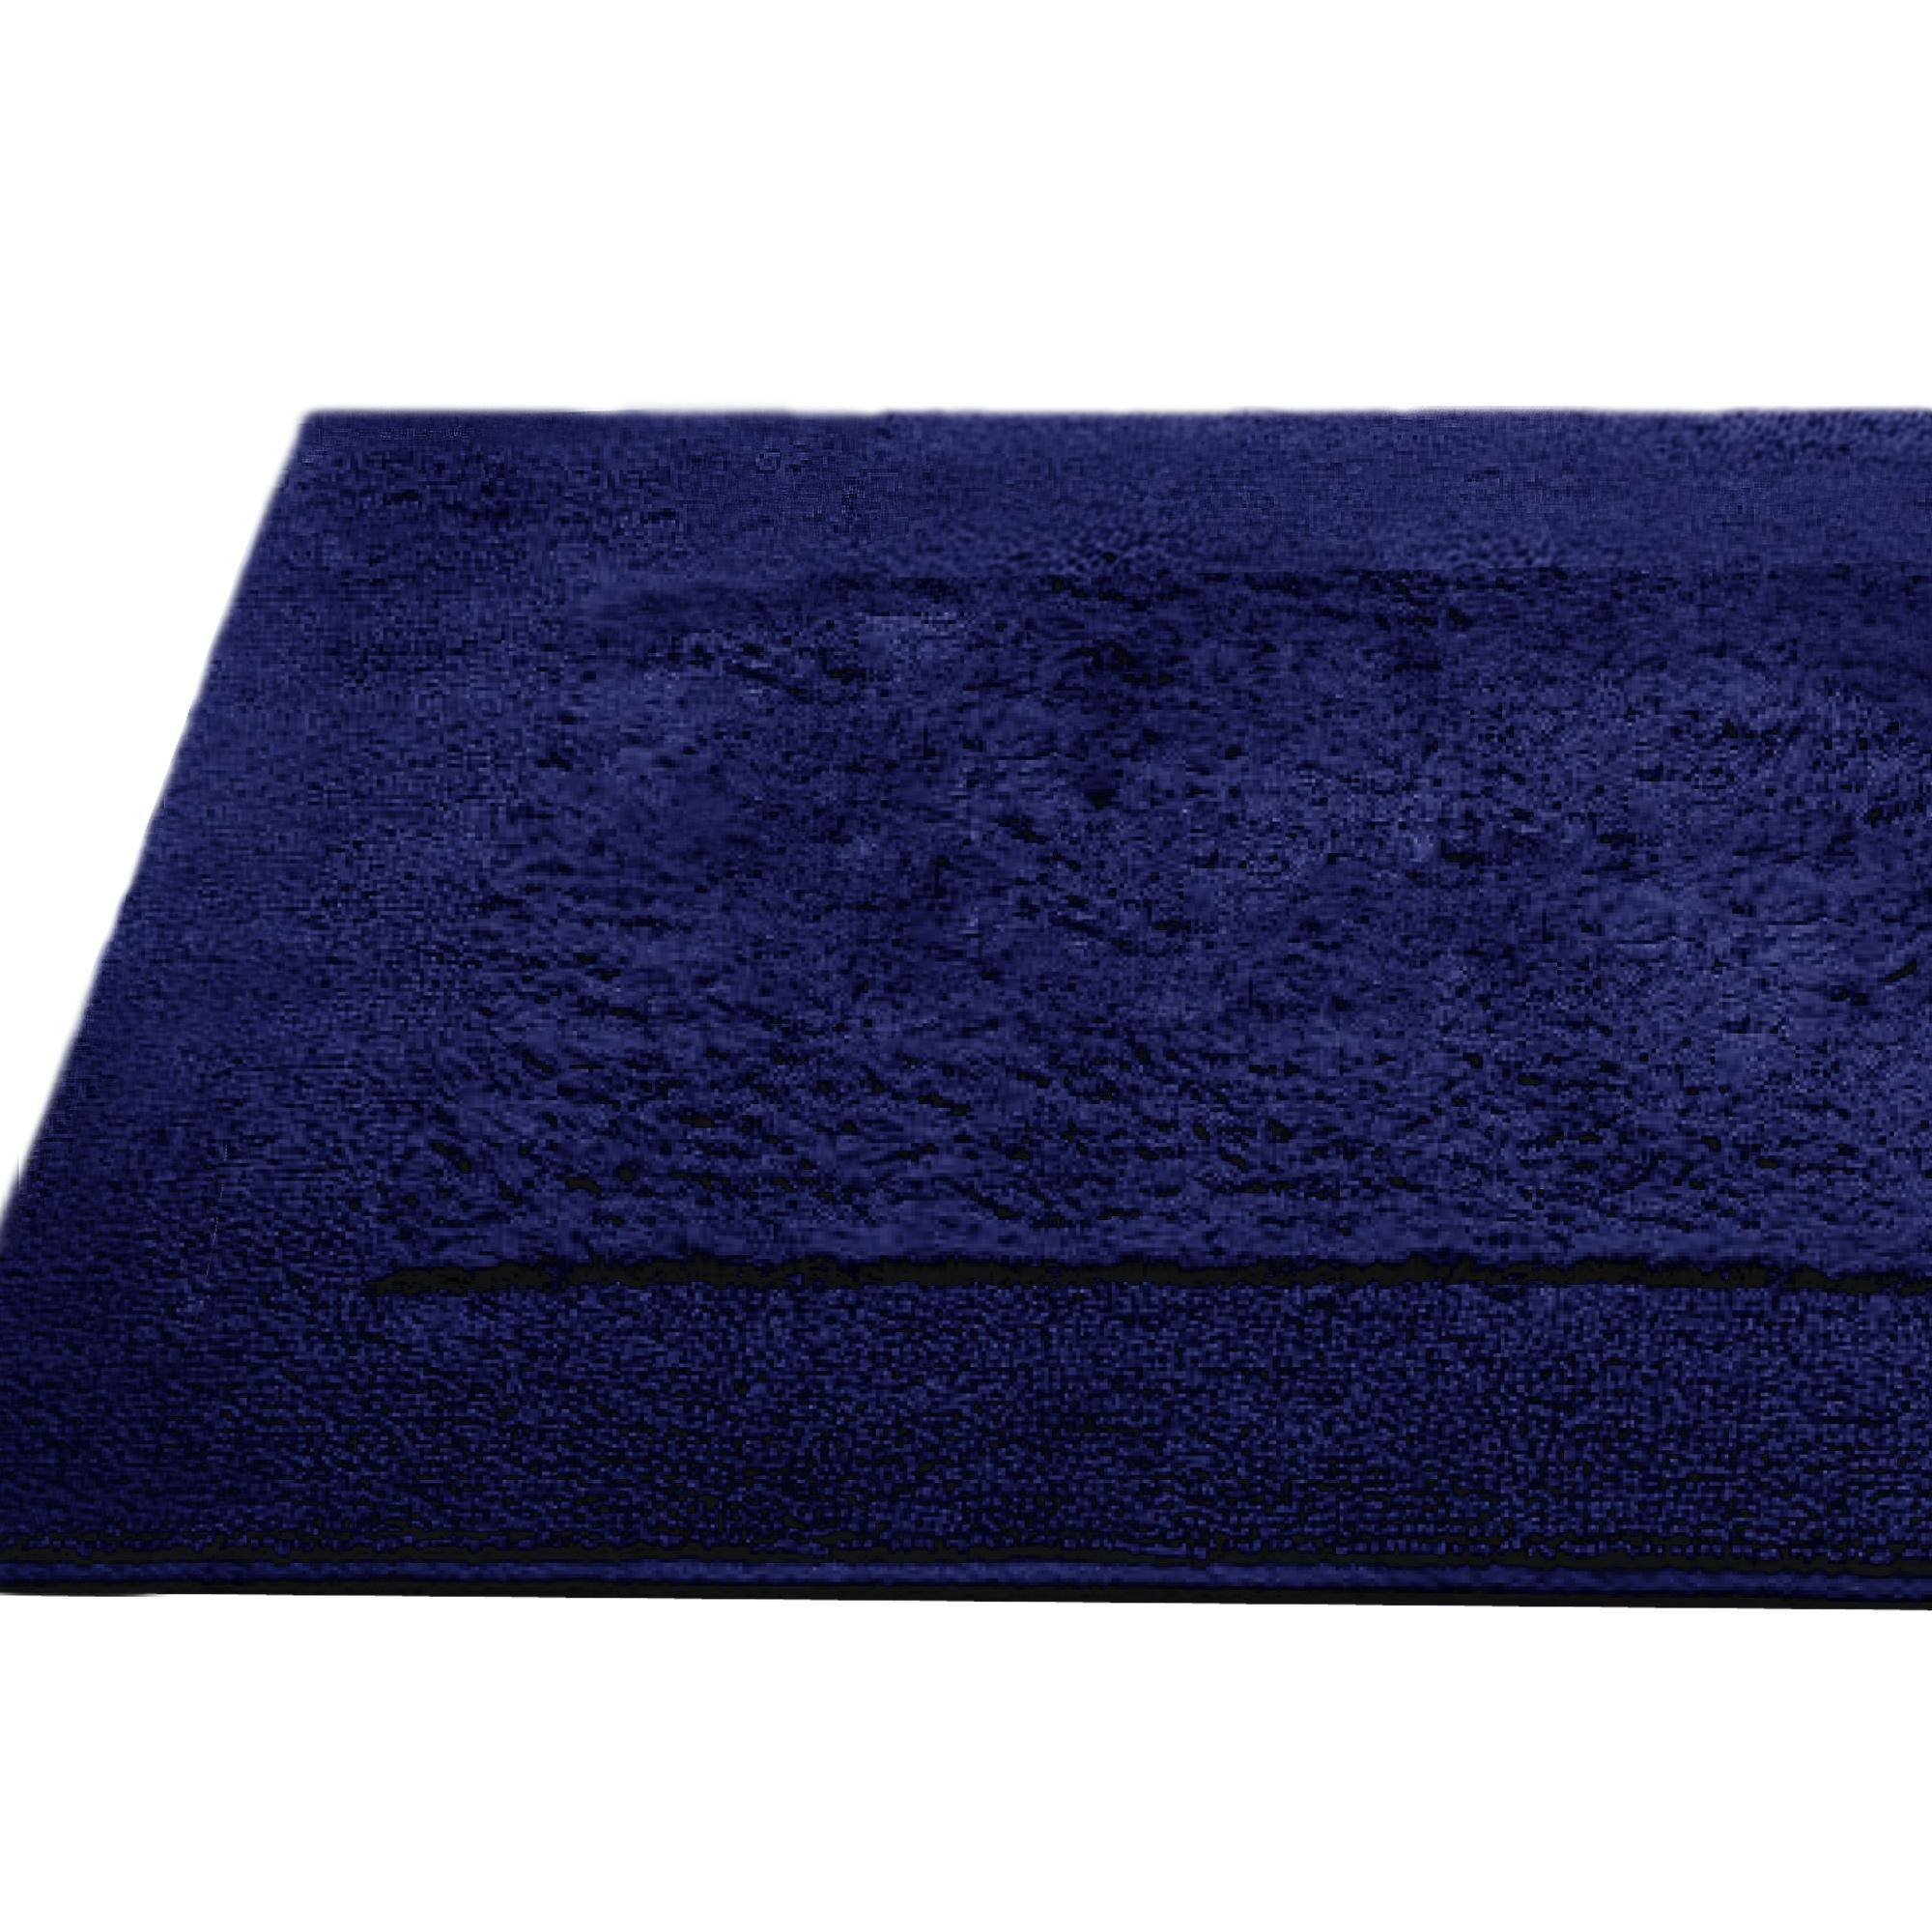 carrelage design tapis de bain bleu moderne design. Black Bedroom Furniture Sets. Home Design Ideas